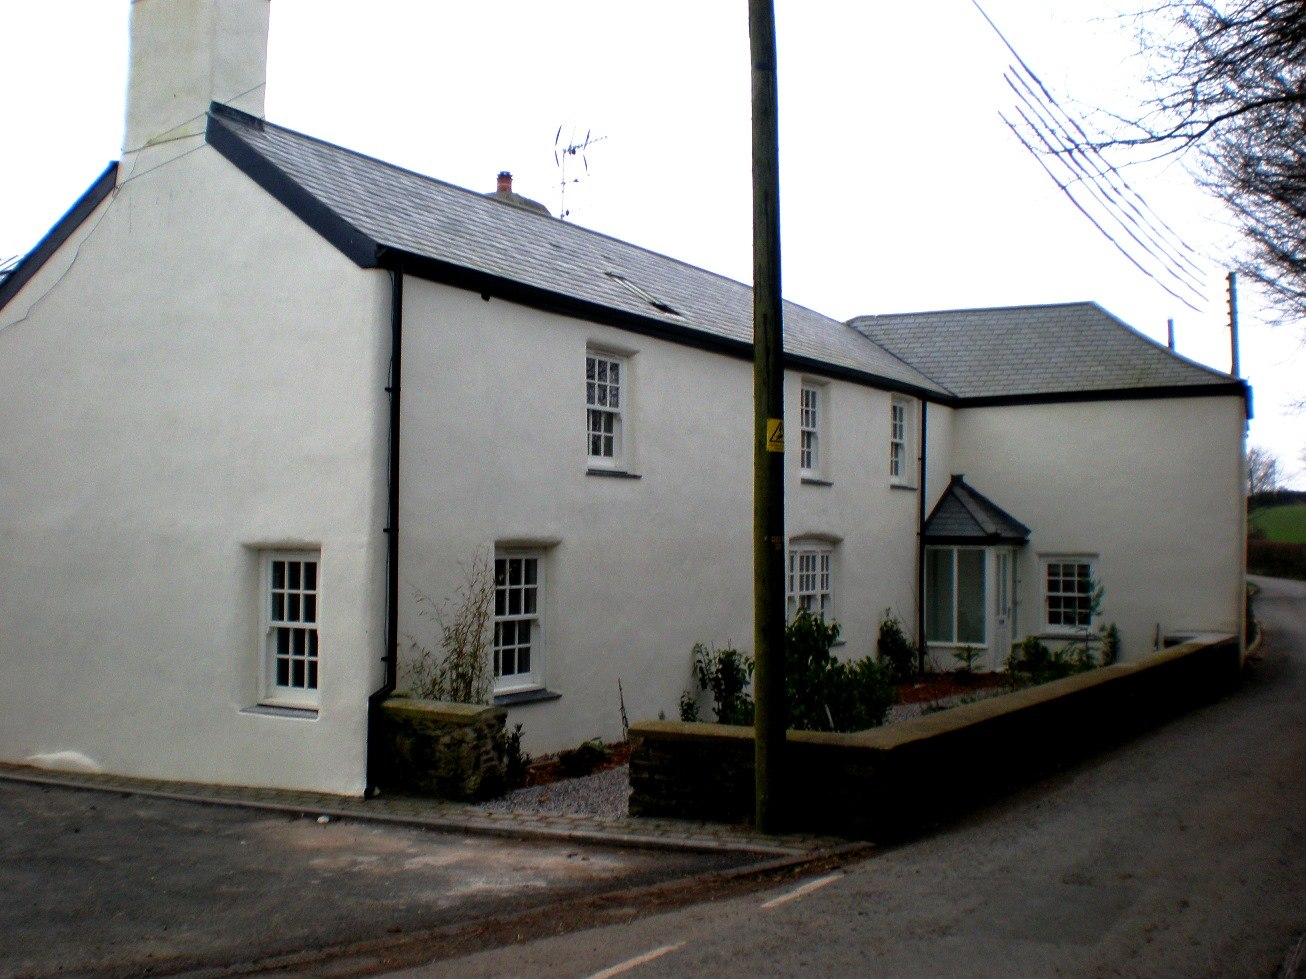 Refurbished farmhouse with lime render to walls